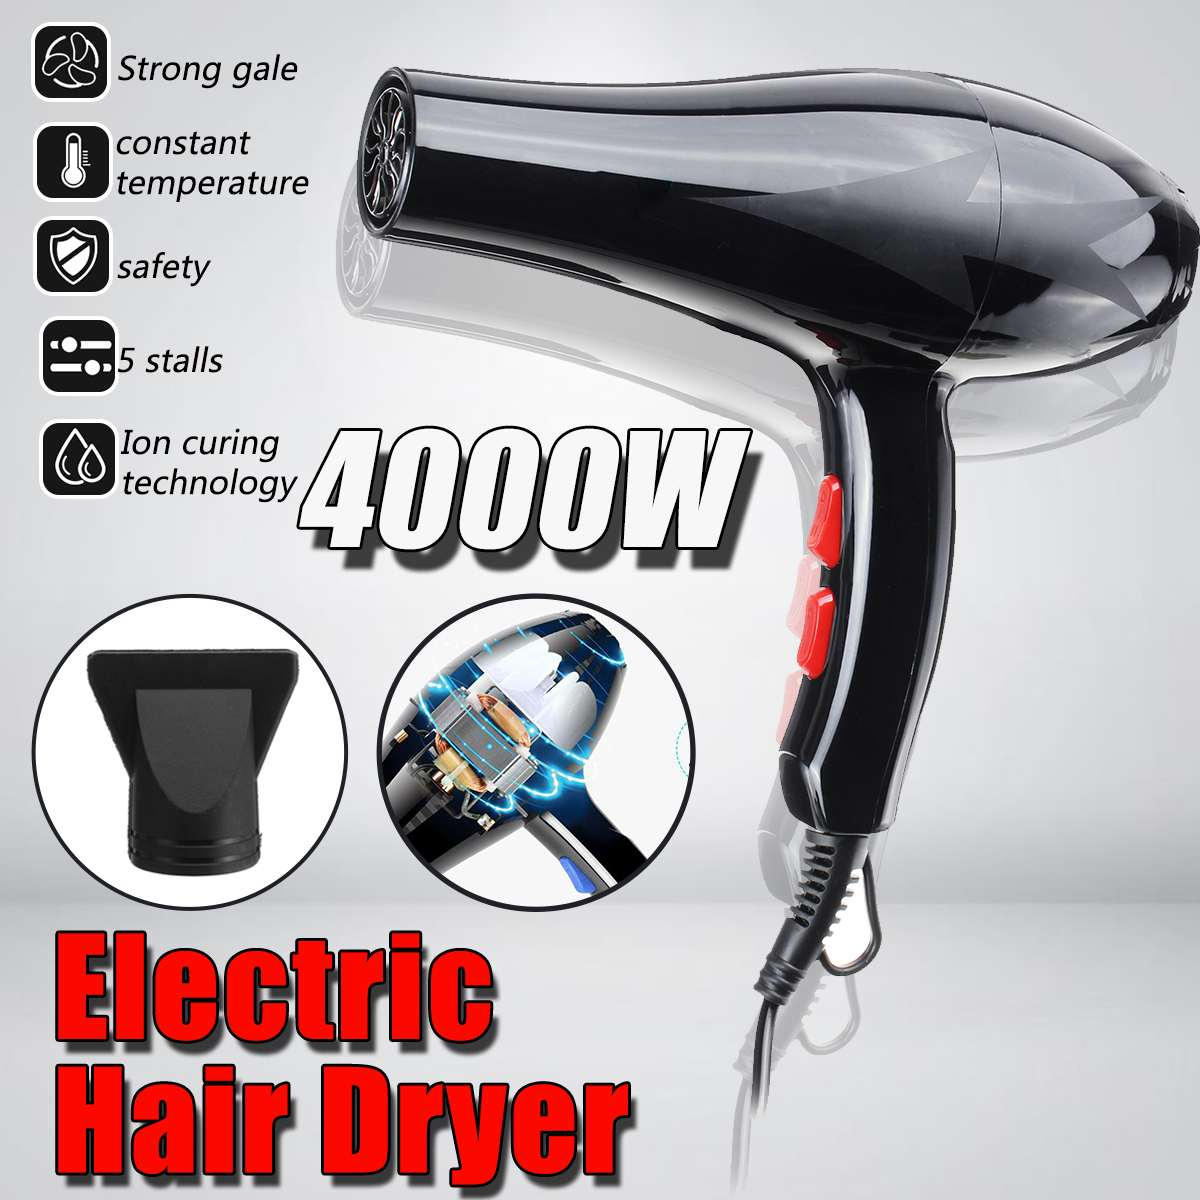 AUGIENB 220v 4000W Professional Hair Dryer Hot Cold Ionic Blow Dryer Fast Heating Household Hairdryer For Hairdressing Salon